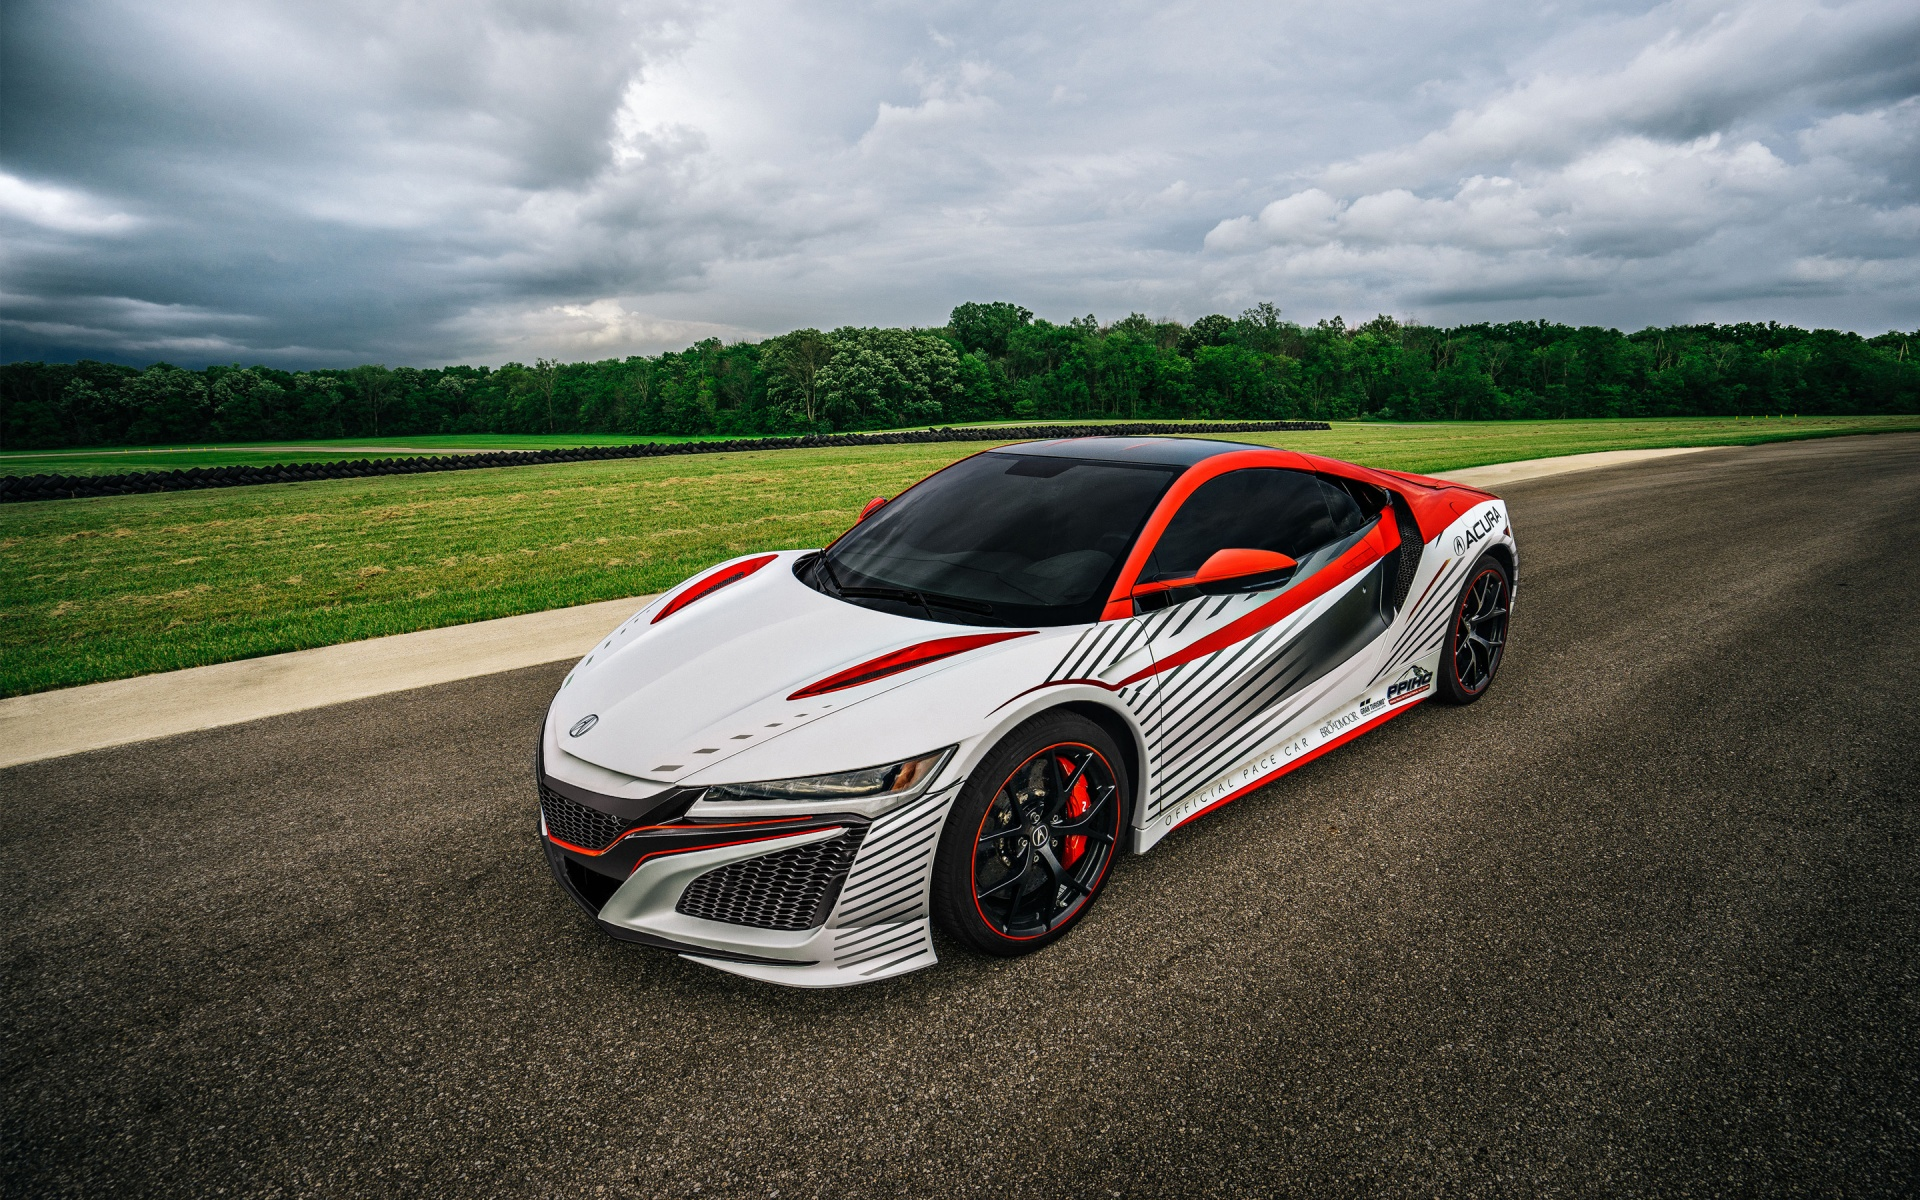 acura nsx wallpapers hd A10